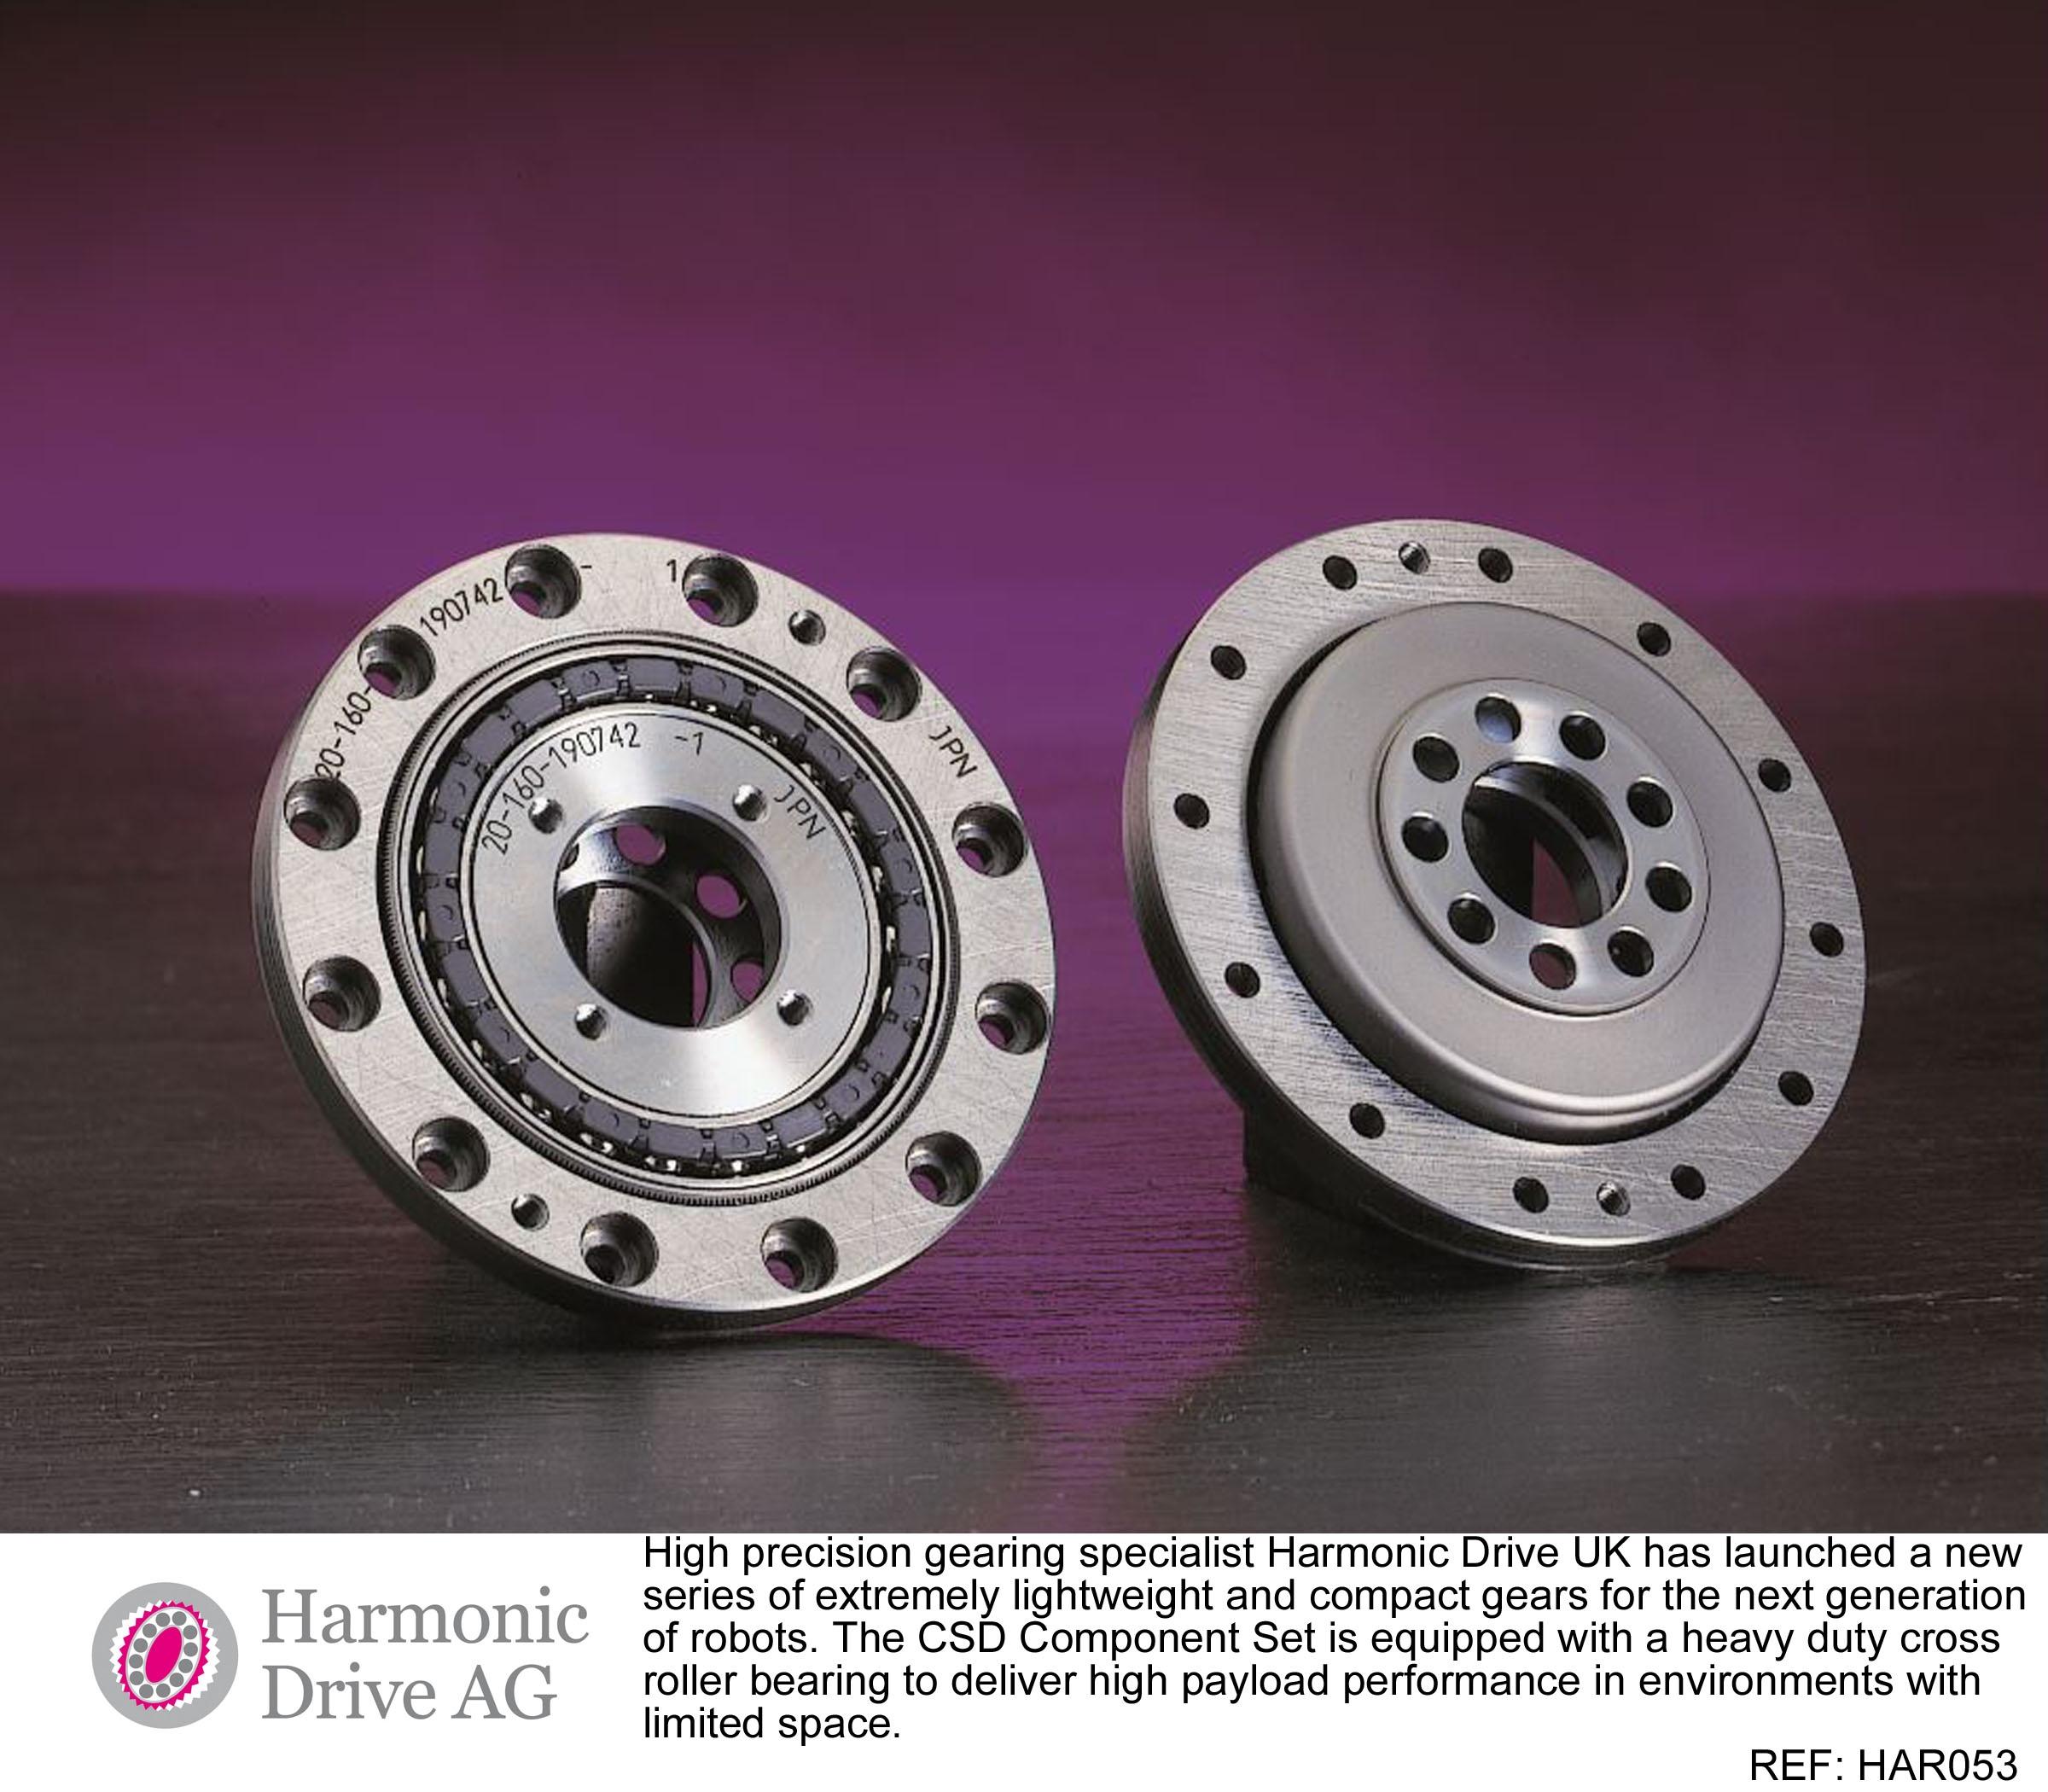 Lightweight gearing for improved robotics